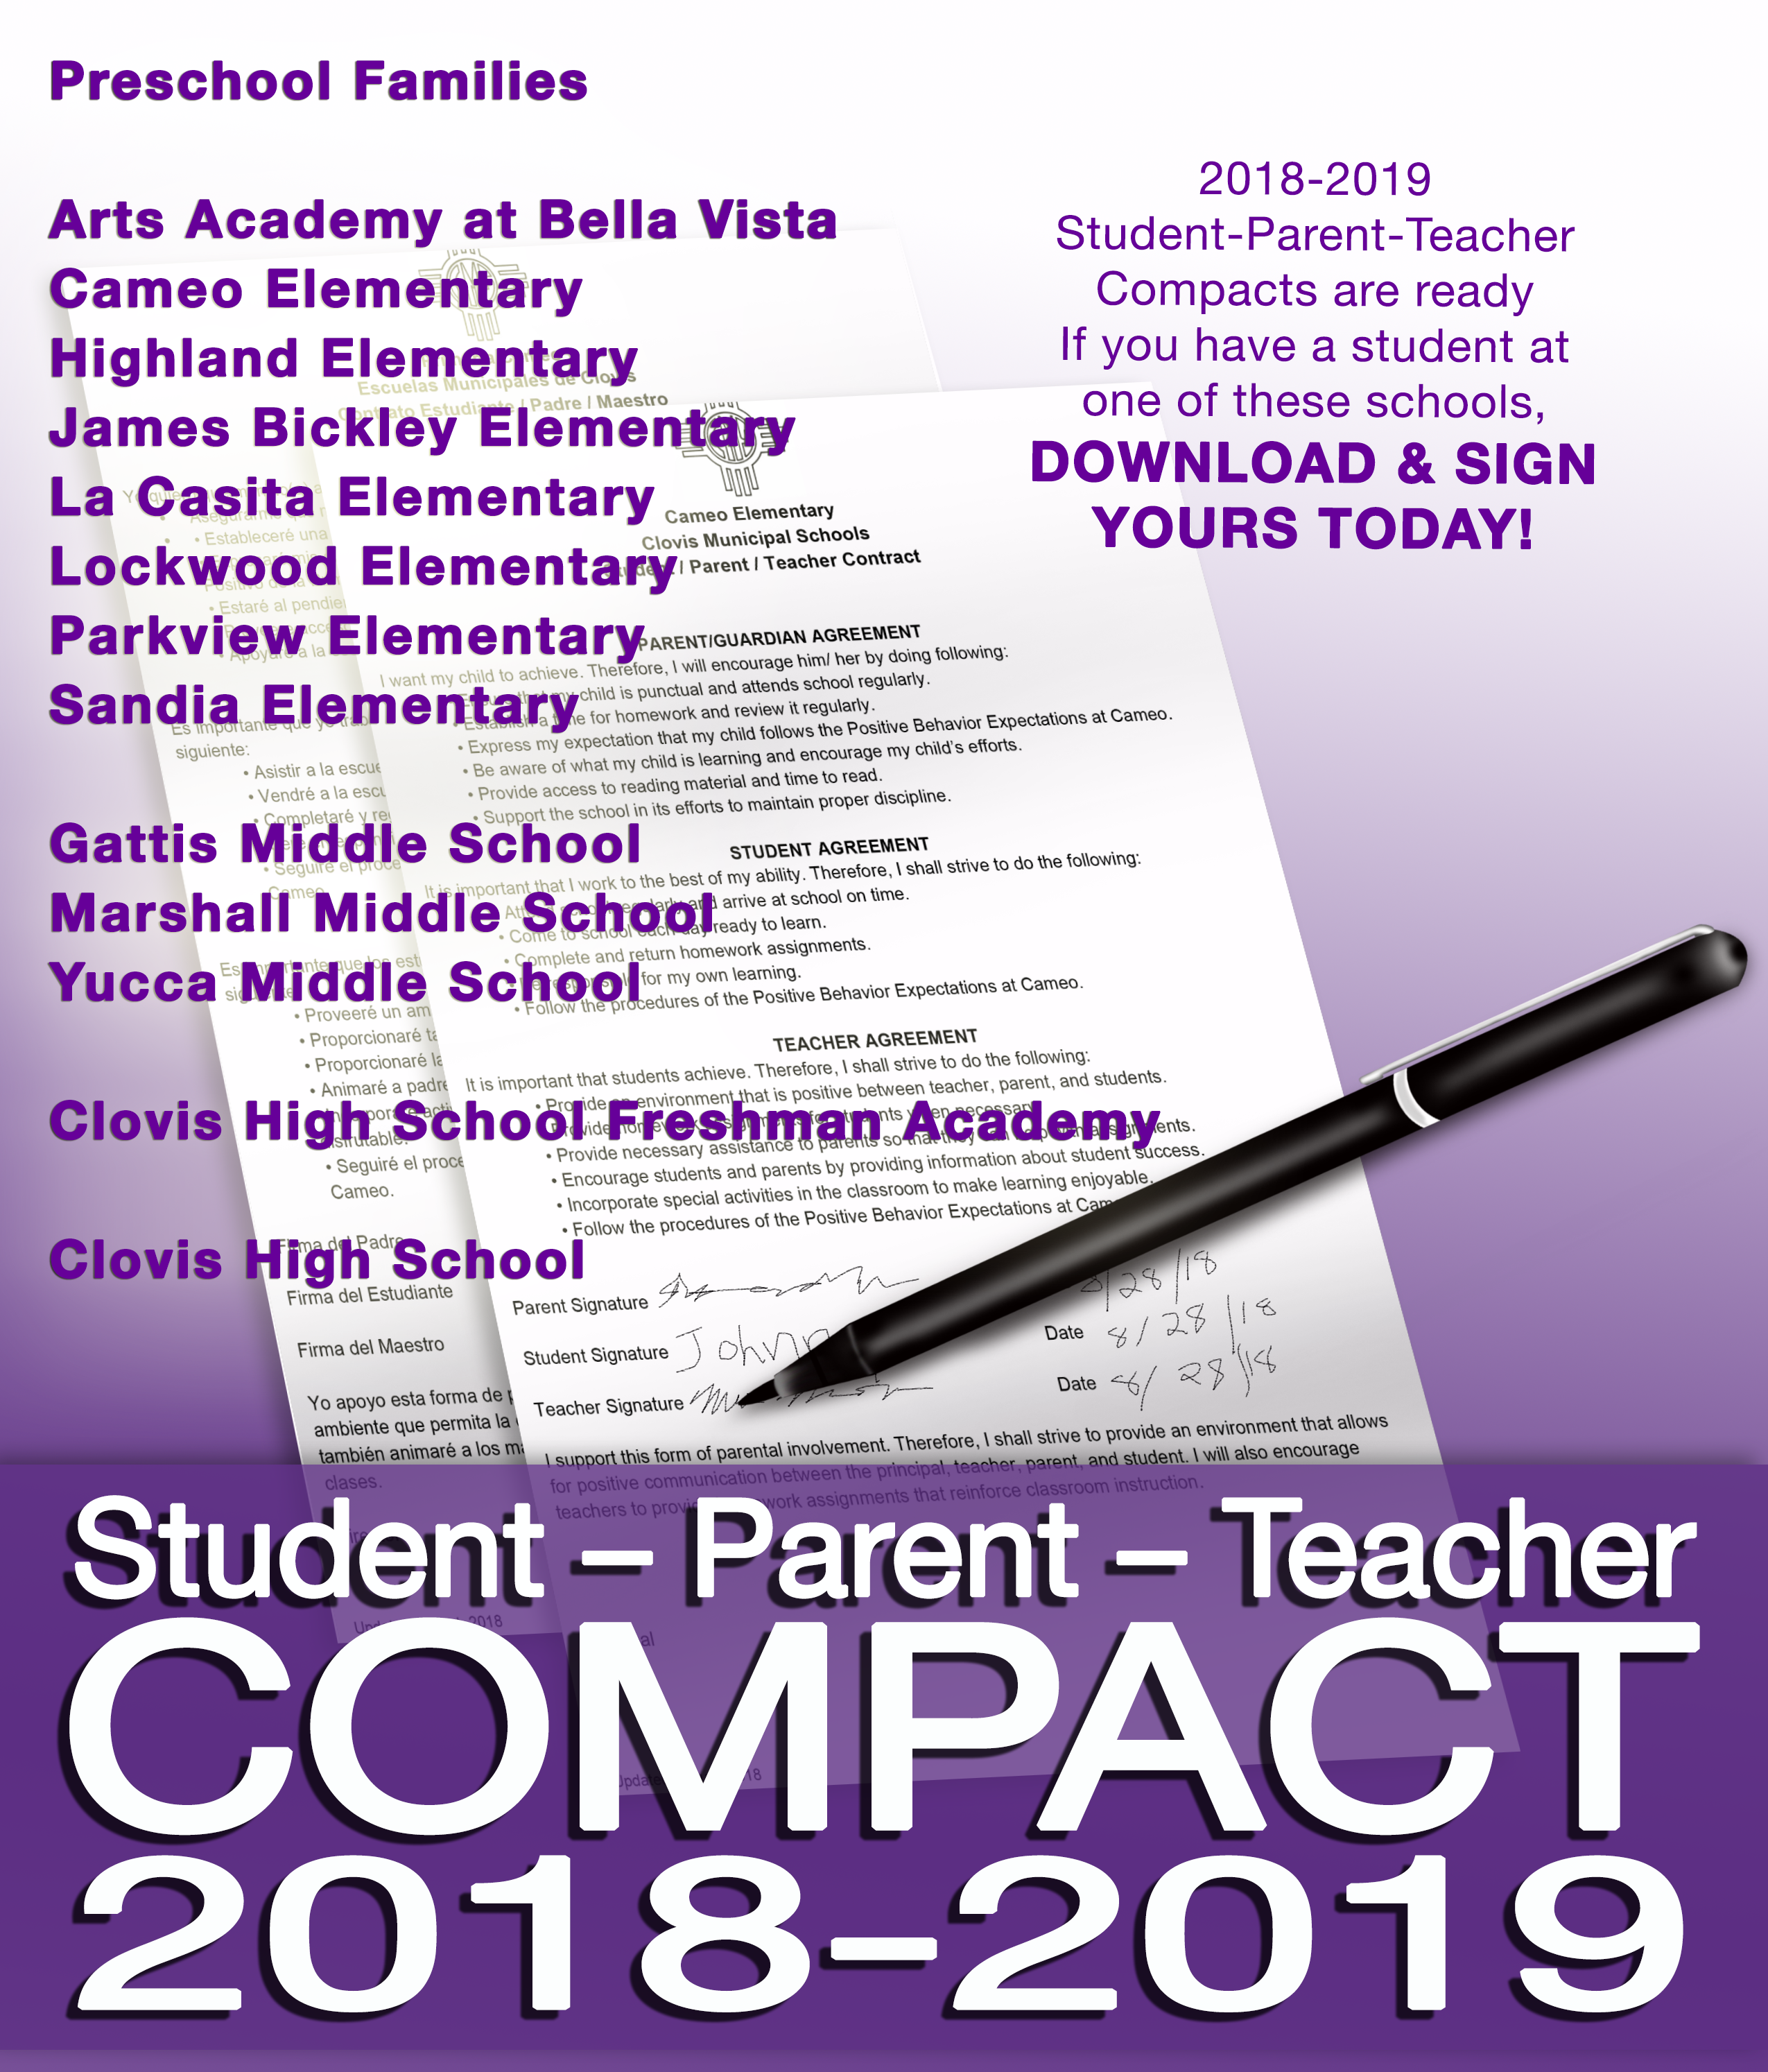 Image of text explaining Student Parent Teacher Compacts